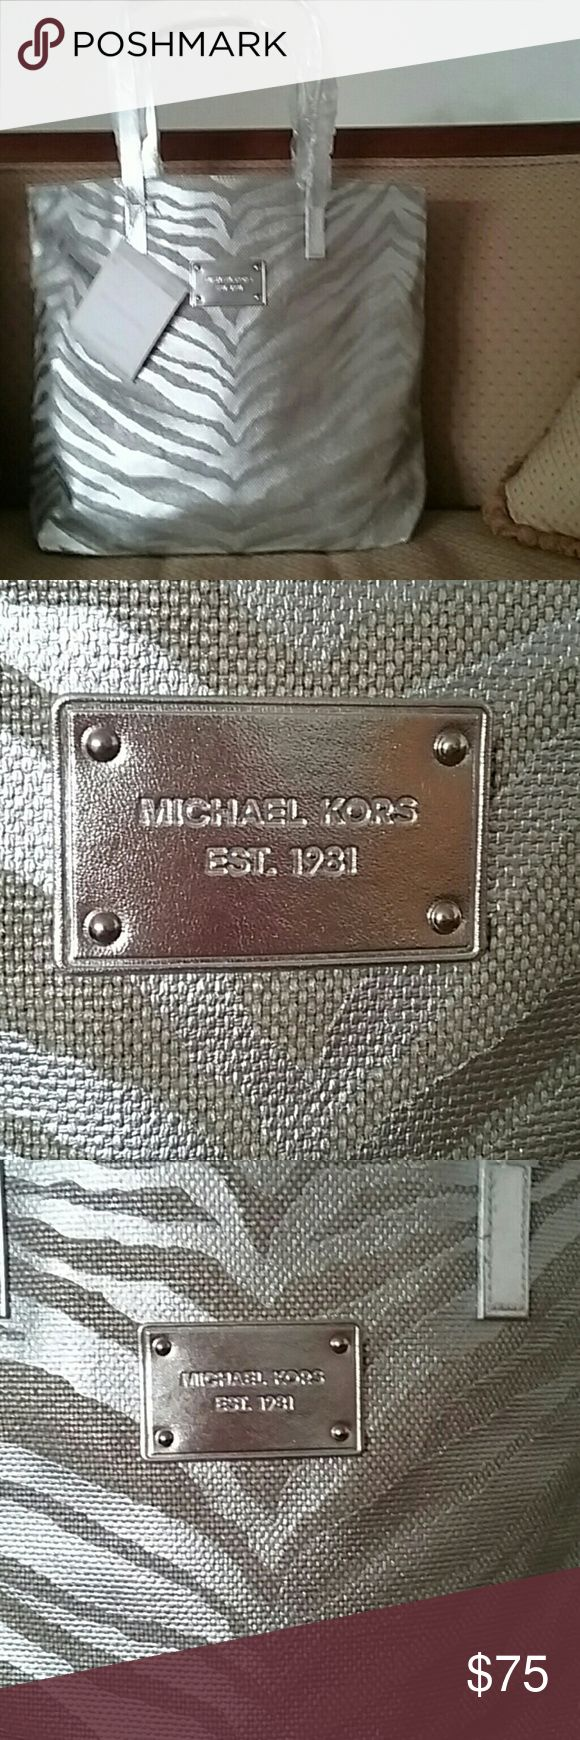 Michael Kors Tote Authentic Fabulous Michael Kors tote bag. Constructed of silver and taupe canvas. Animal print with silver handles. Dementions 15x13x5. Great grab and go bag. Price firm no offers please. Michael Kors  Bags Totes